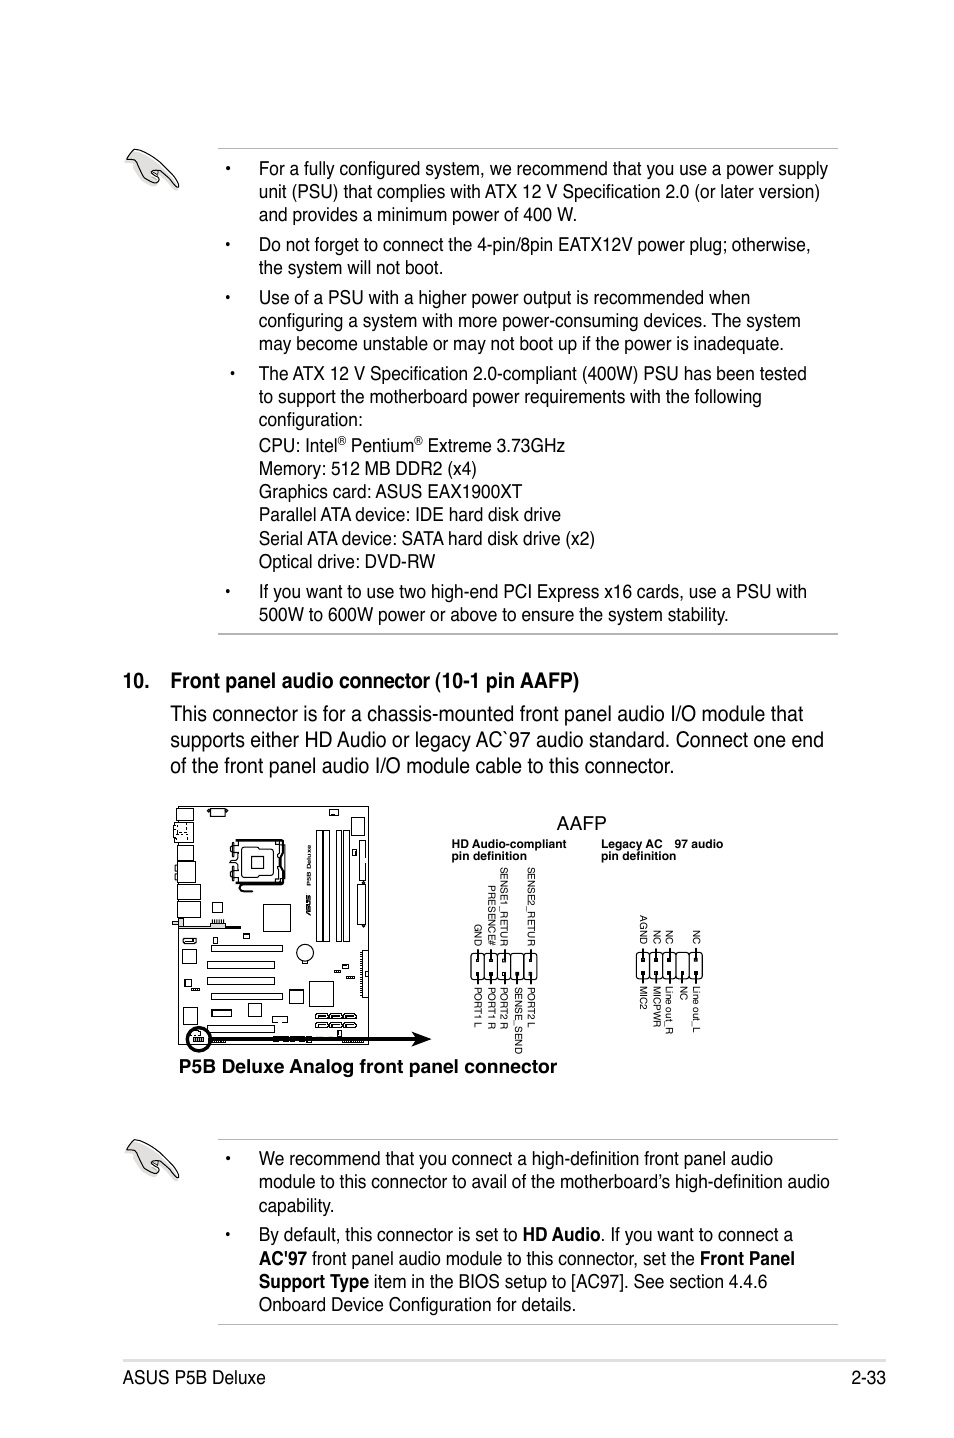 Pentium, P5b deluxe analog front panel connector aafp   Asus P5B Deluxe/WiFi -AP User Manual   Page 59 / 178